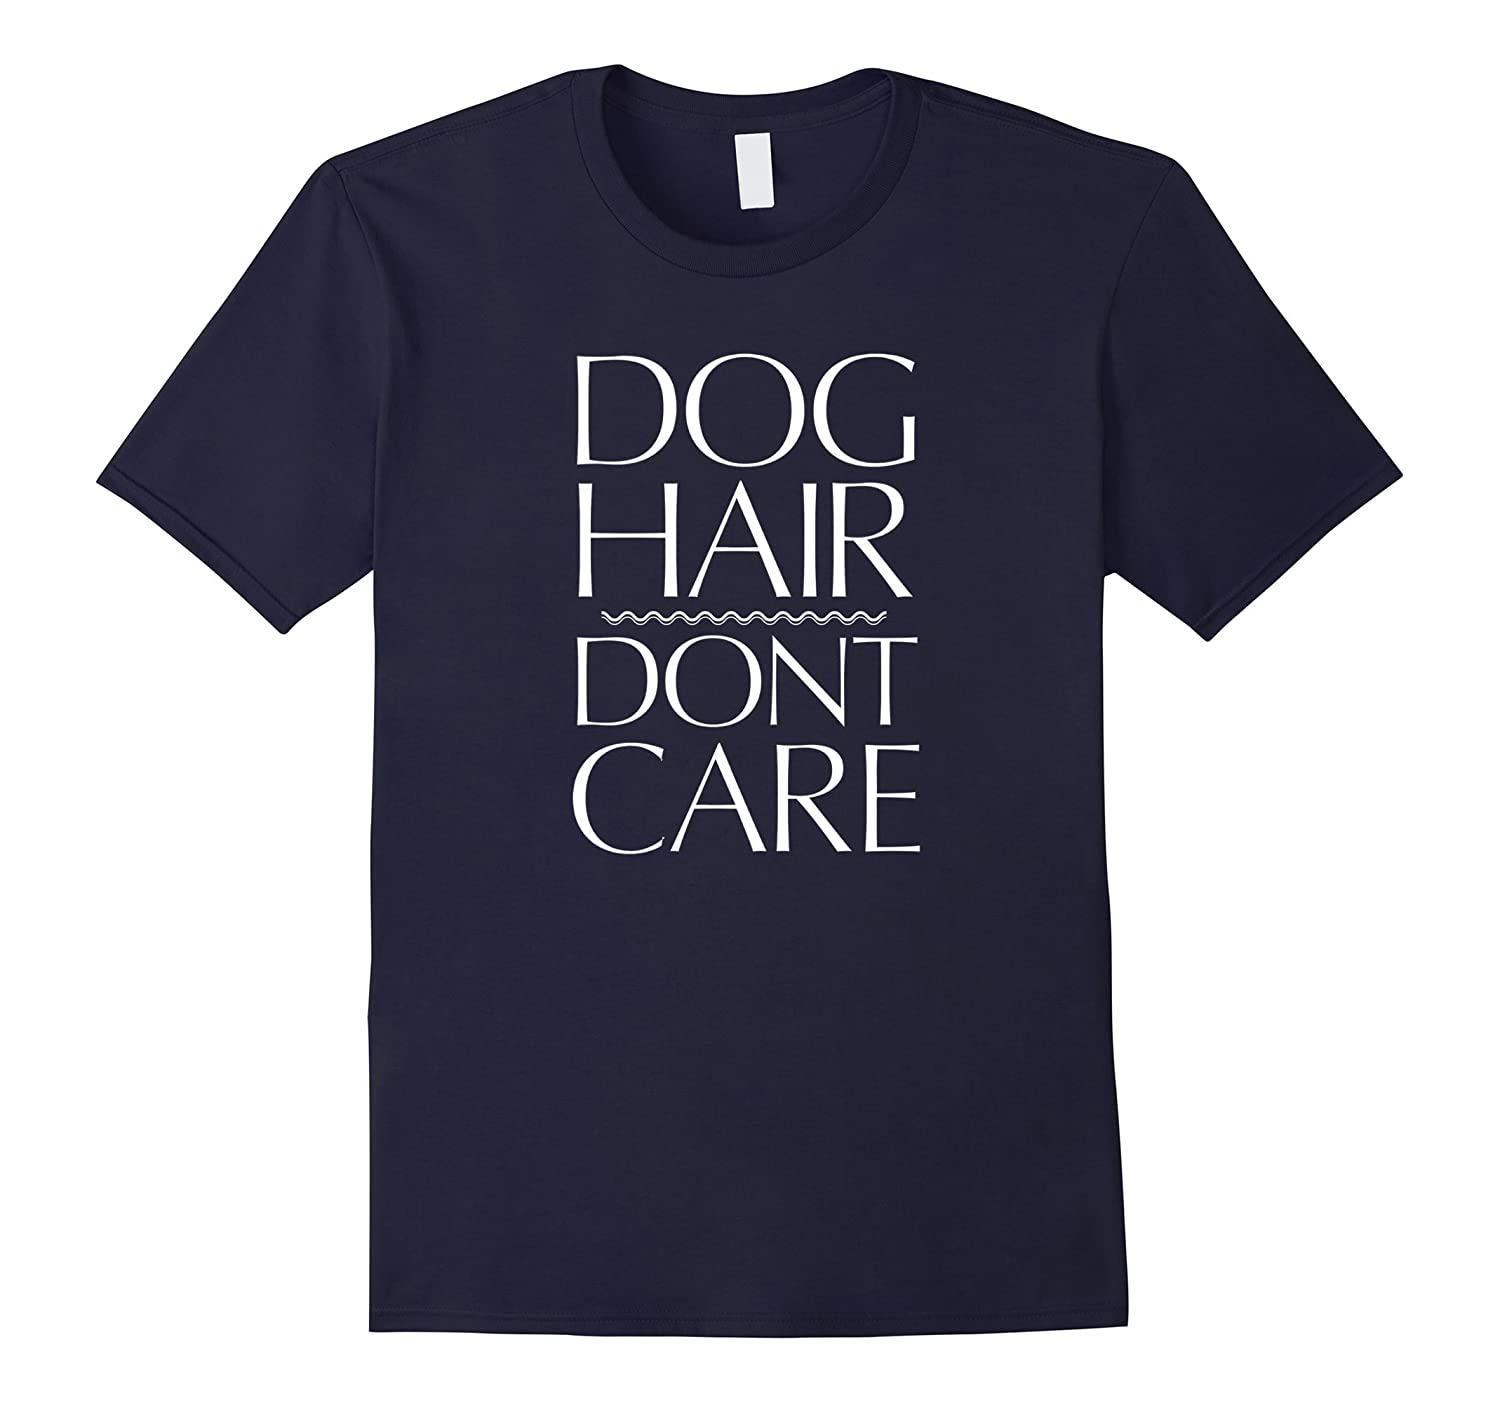 Aw Cute Dog Shirts Dog Hair Dont Care Funny T-shirt Shirt-BN